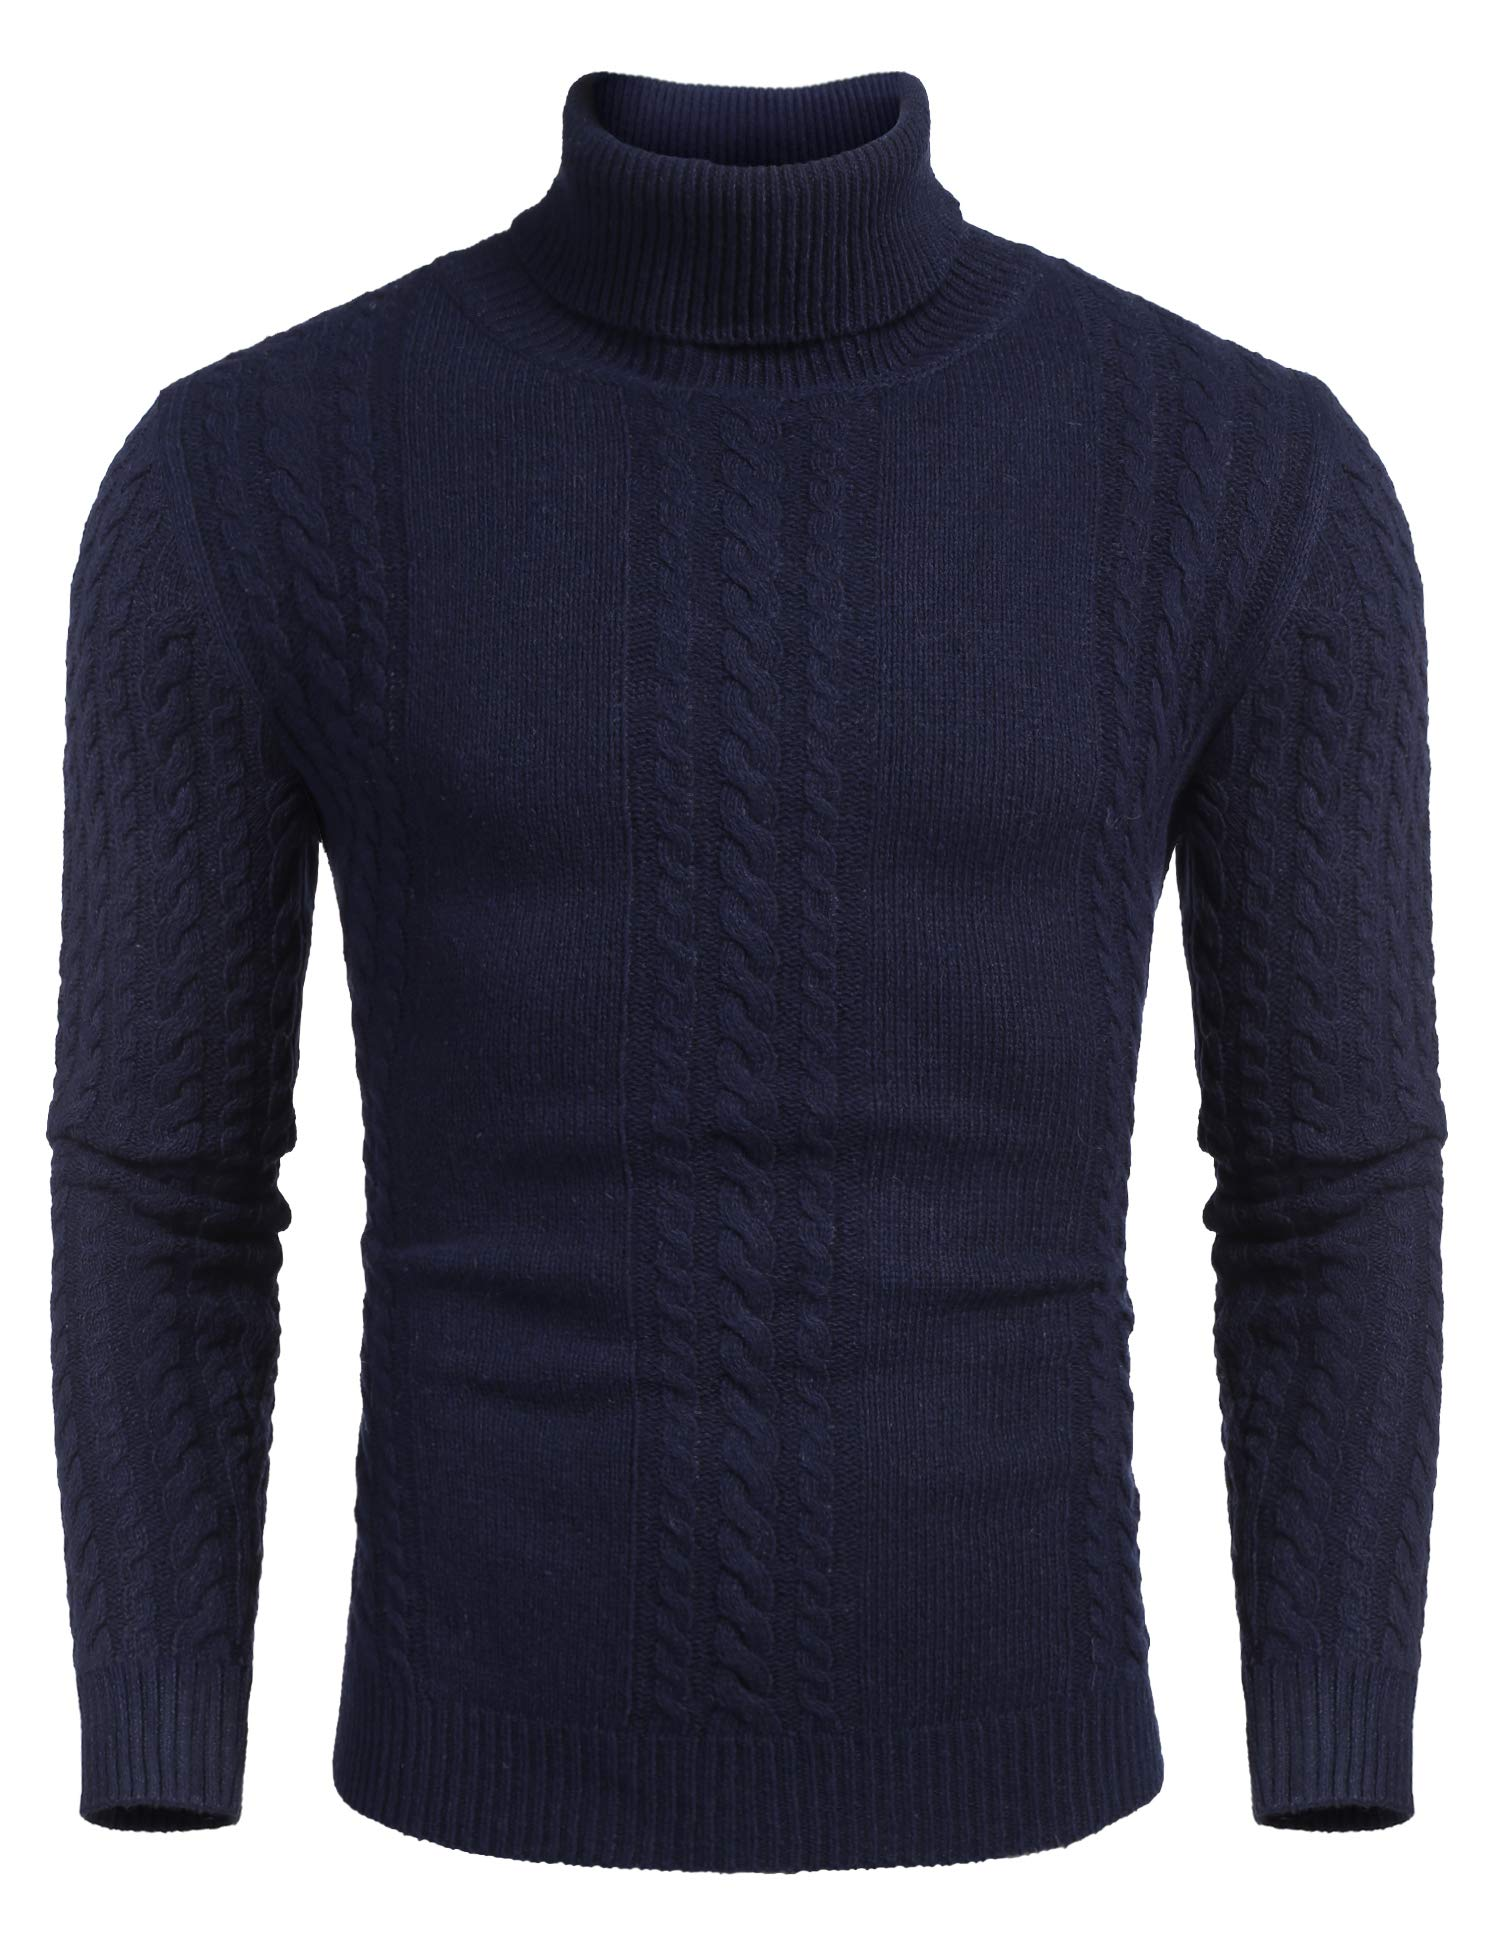 COOFANDY Men's Casual Slim Fit Turtleneck Sweaters Long Sleeve Knitted Twisted Pullover Sweater